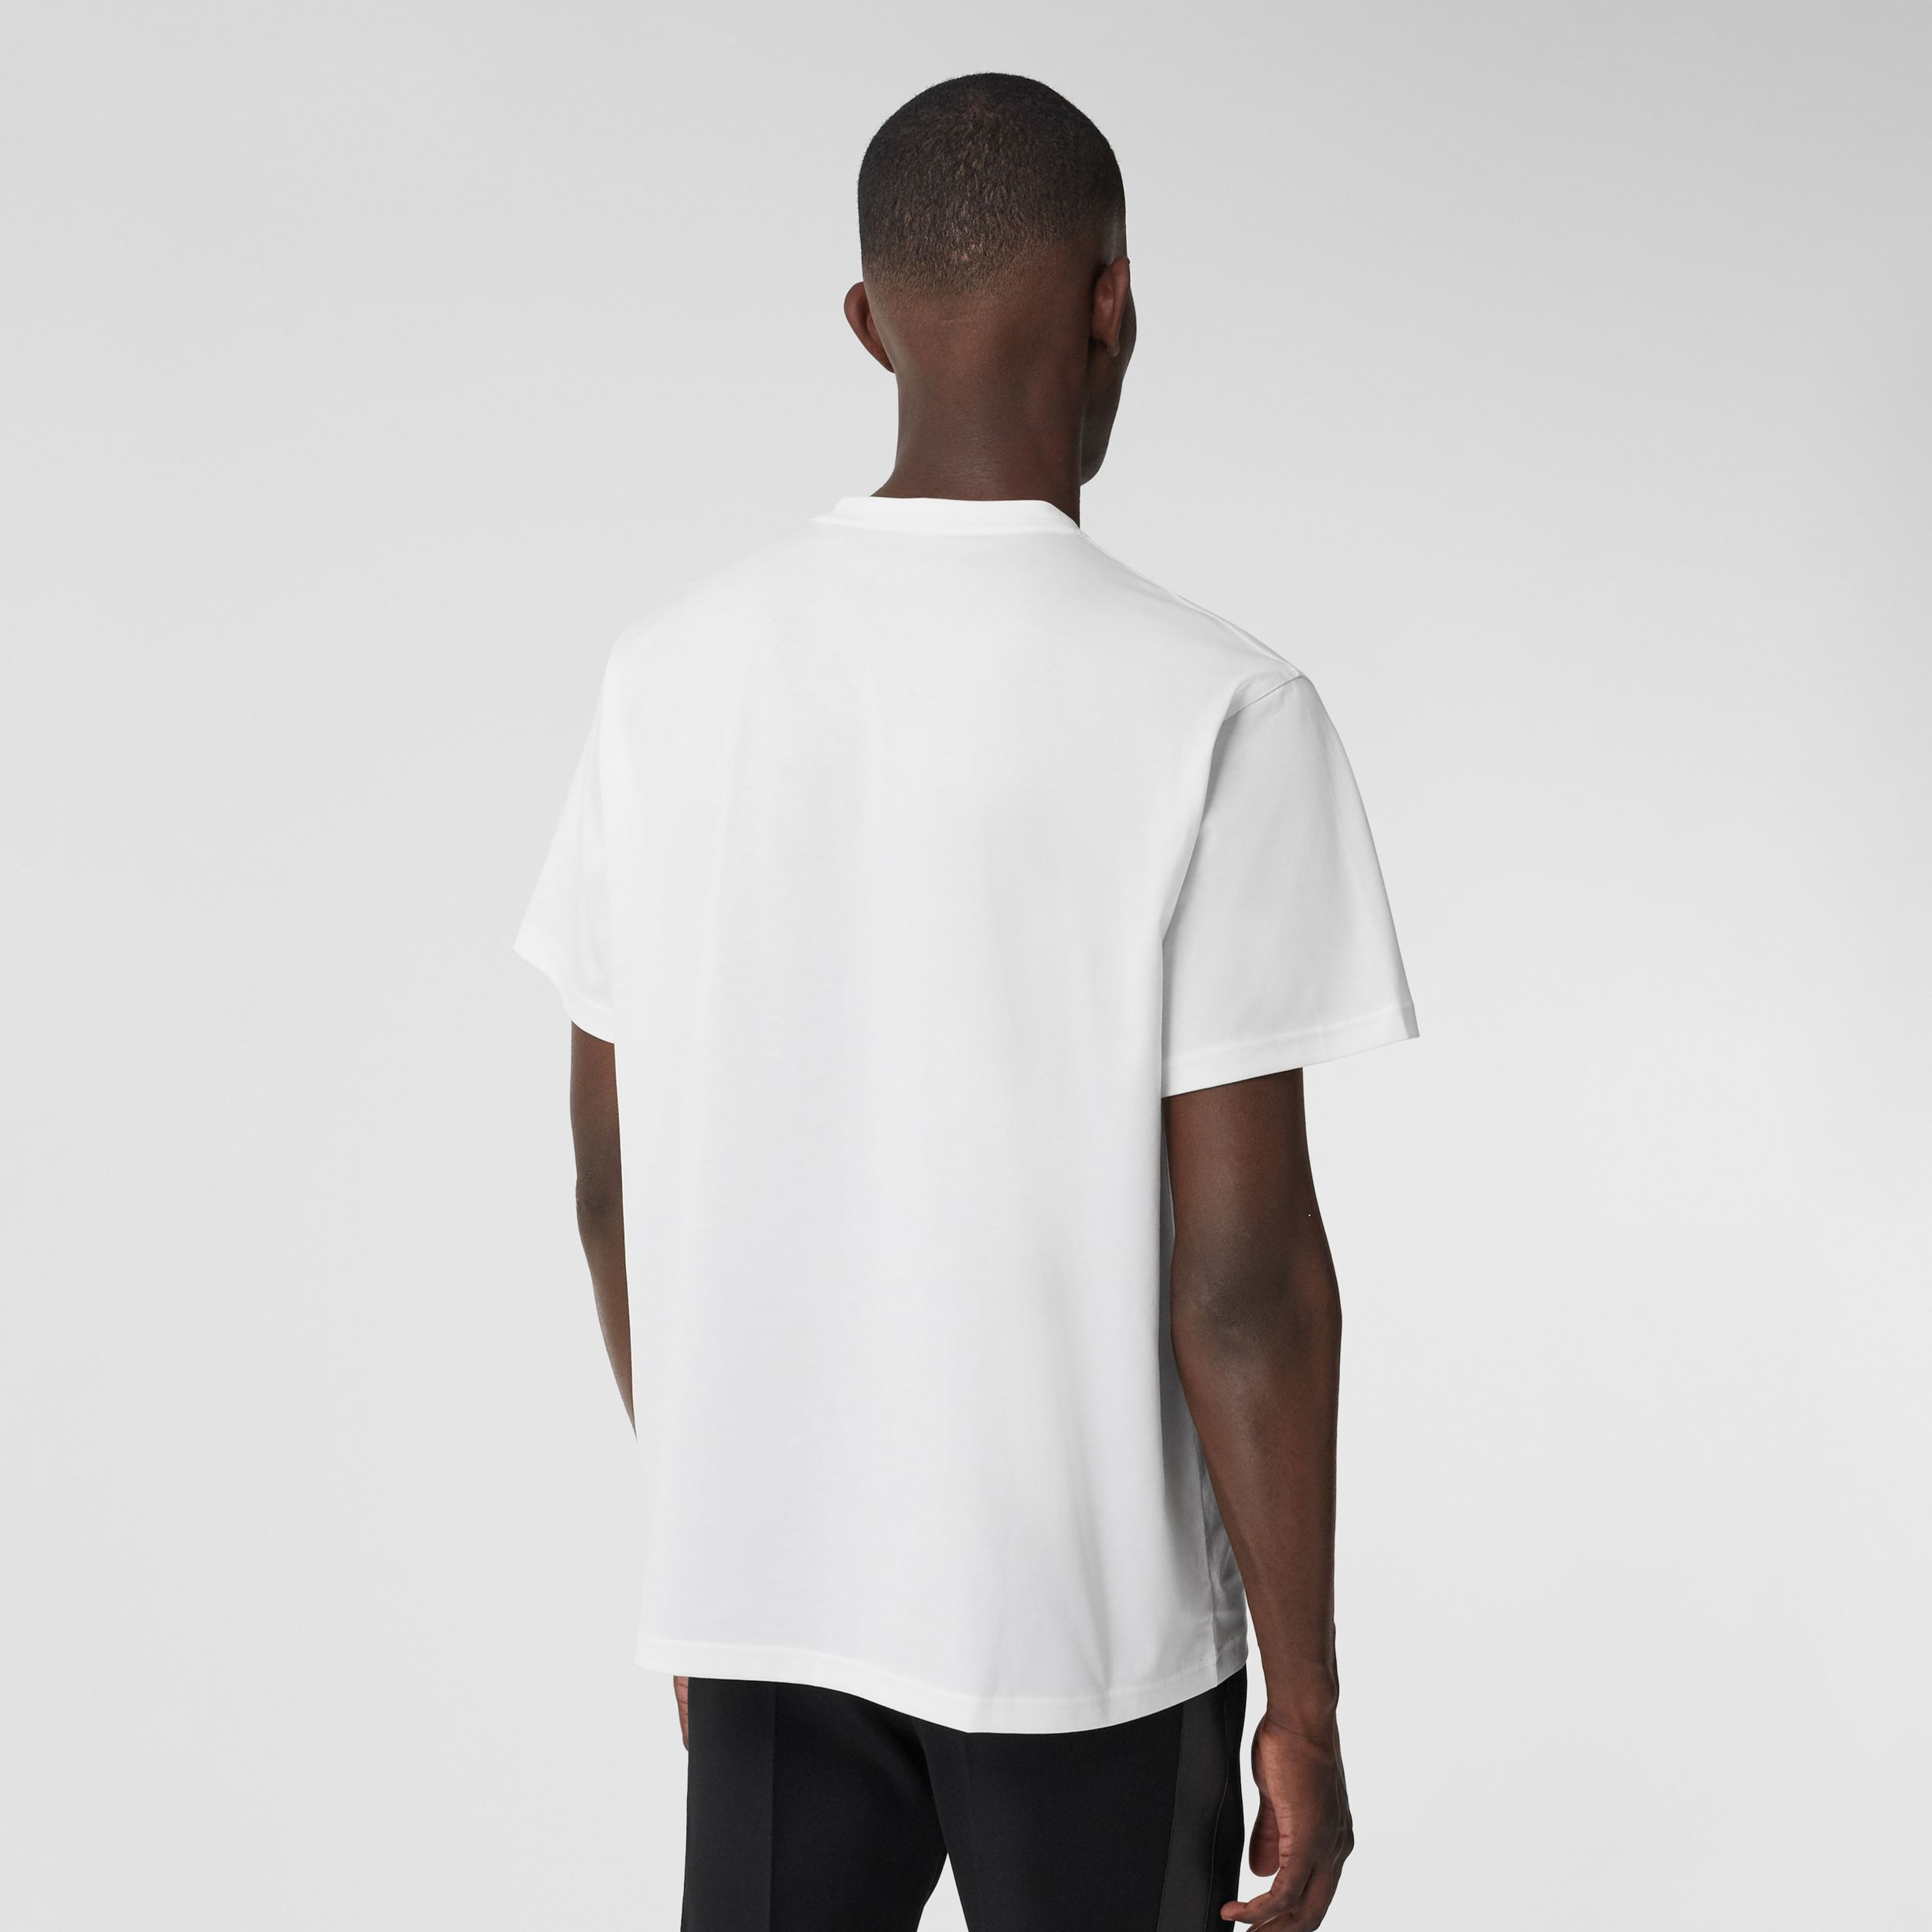 Logo Graphic Cotton Oversized T-shirt in White - Men | Burberry - 3